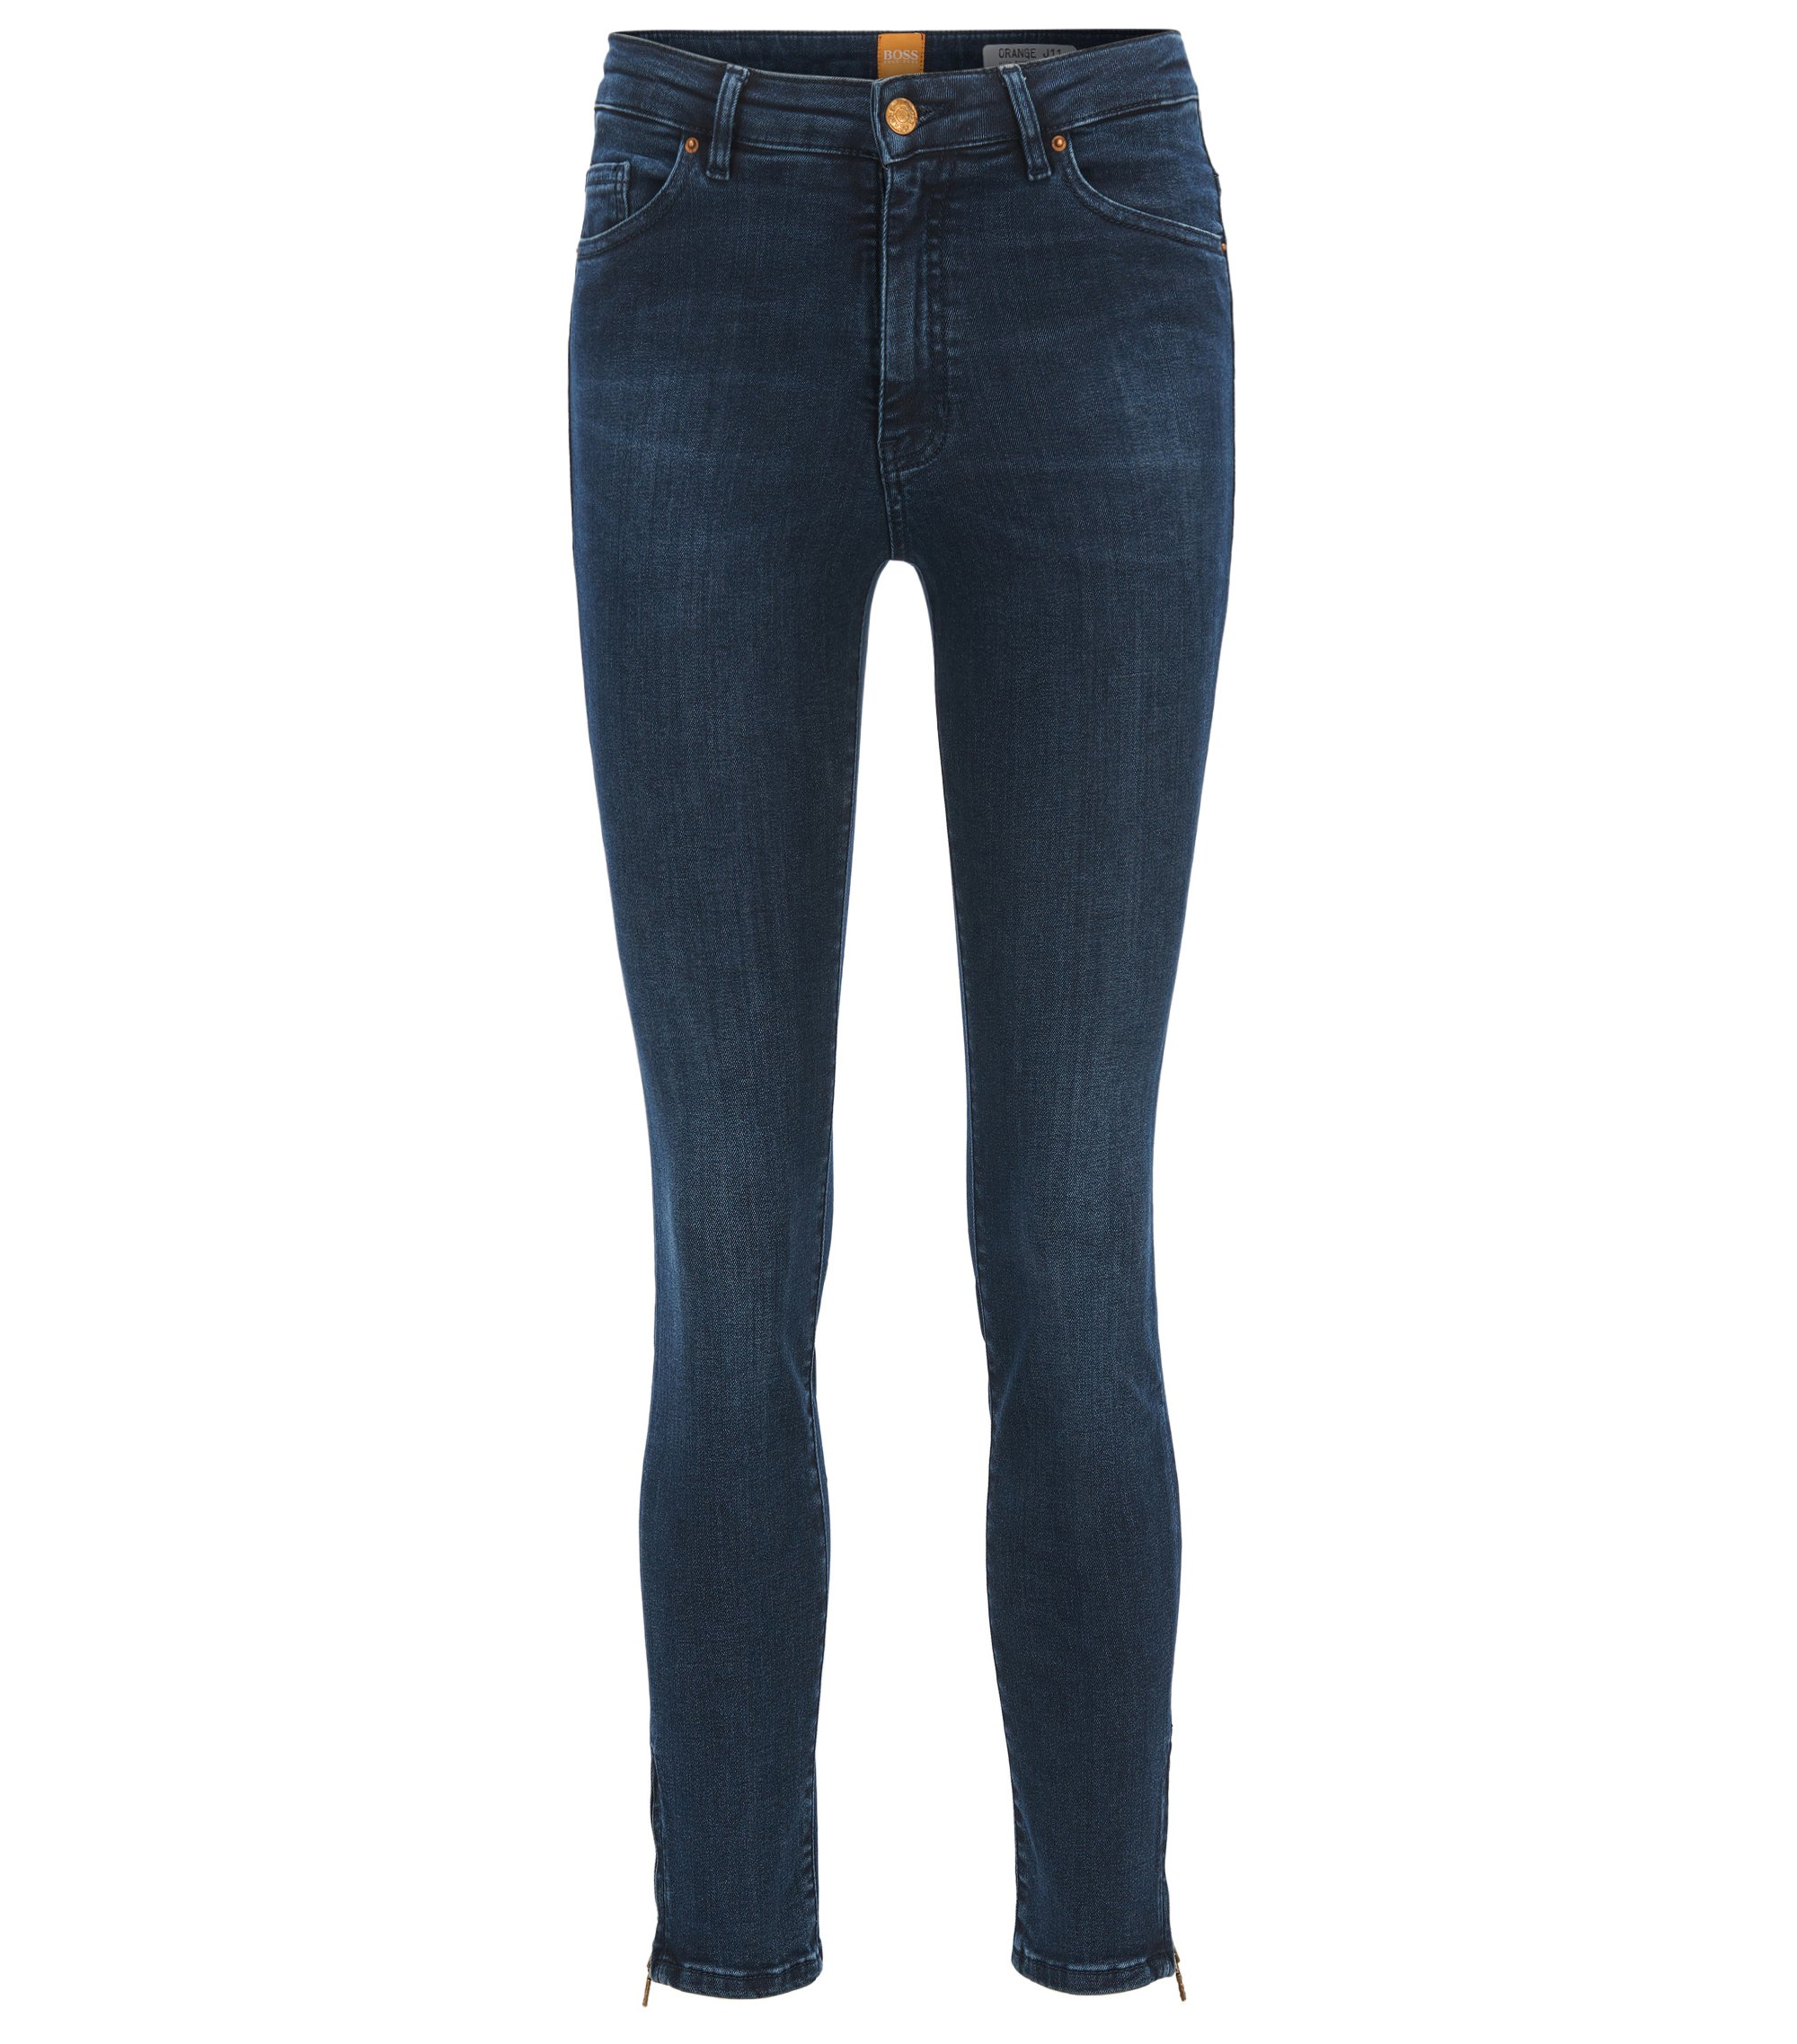 Skinny-Fit Jeans aus Stretch Denim, Dunkelblau